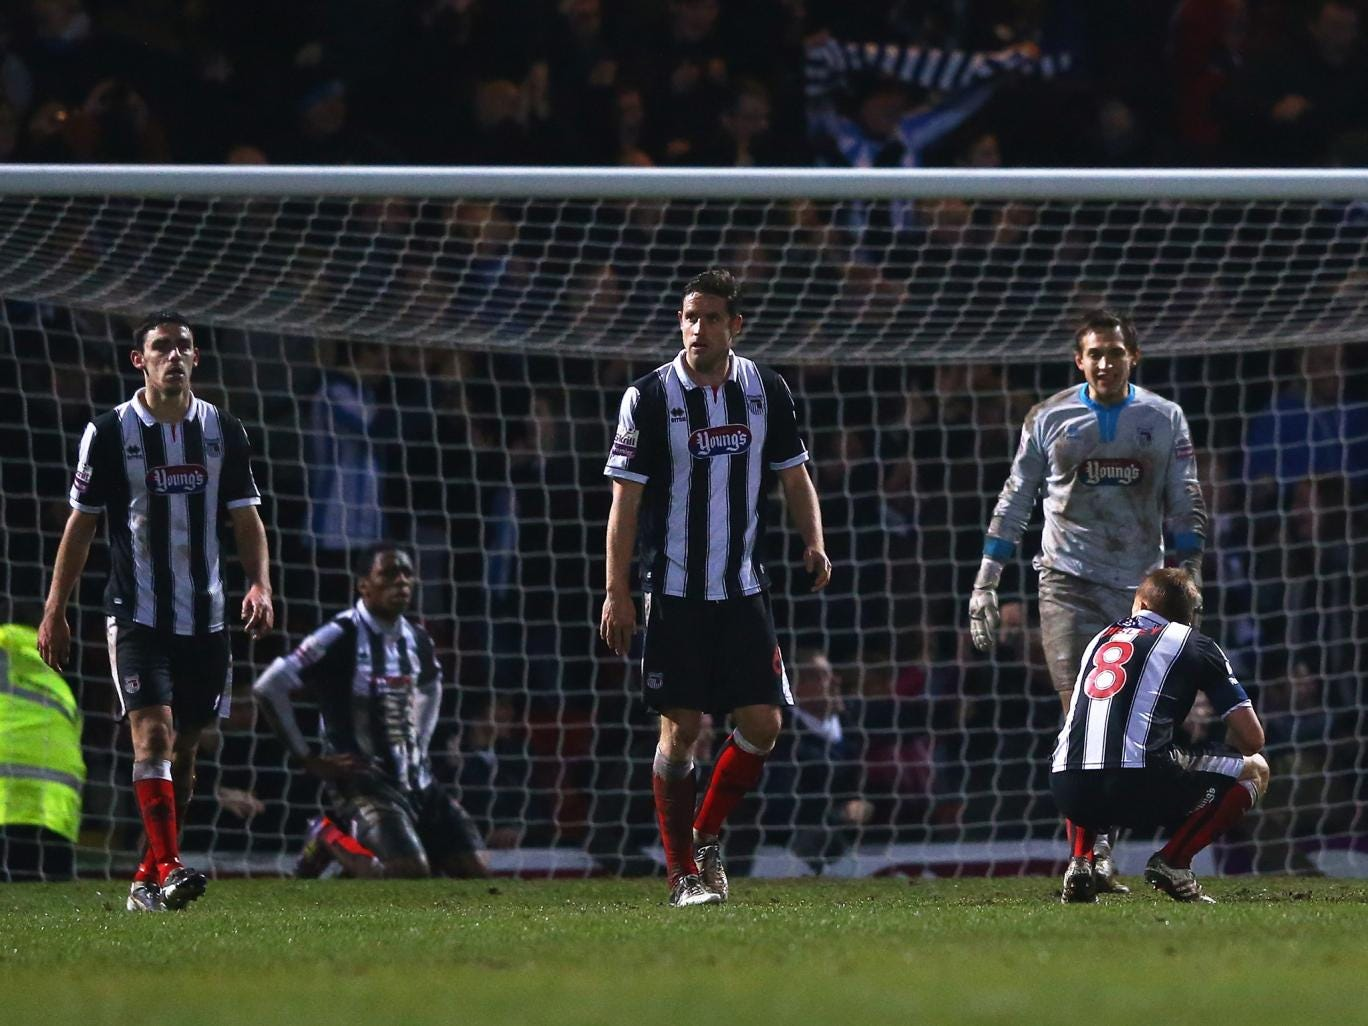 Grimsby players look dejected after conceding a late goal to Huddersfield that saw them knocked out of the FA Cup